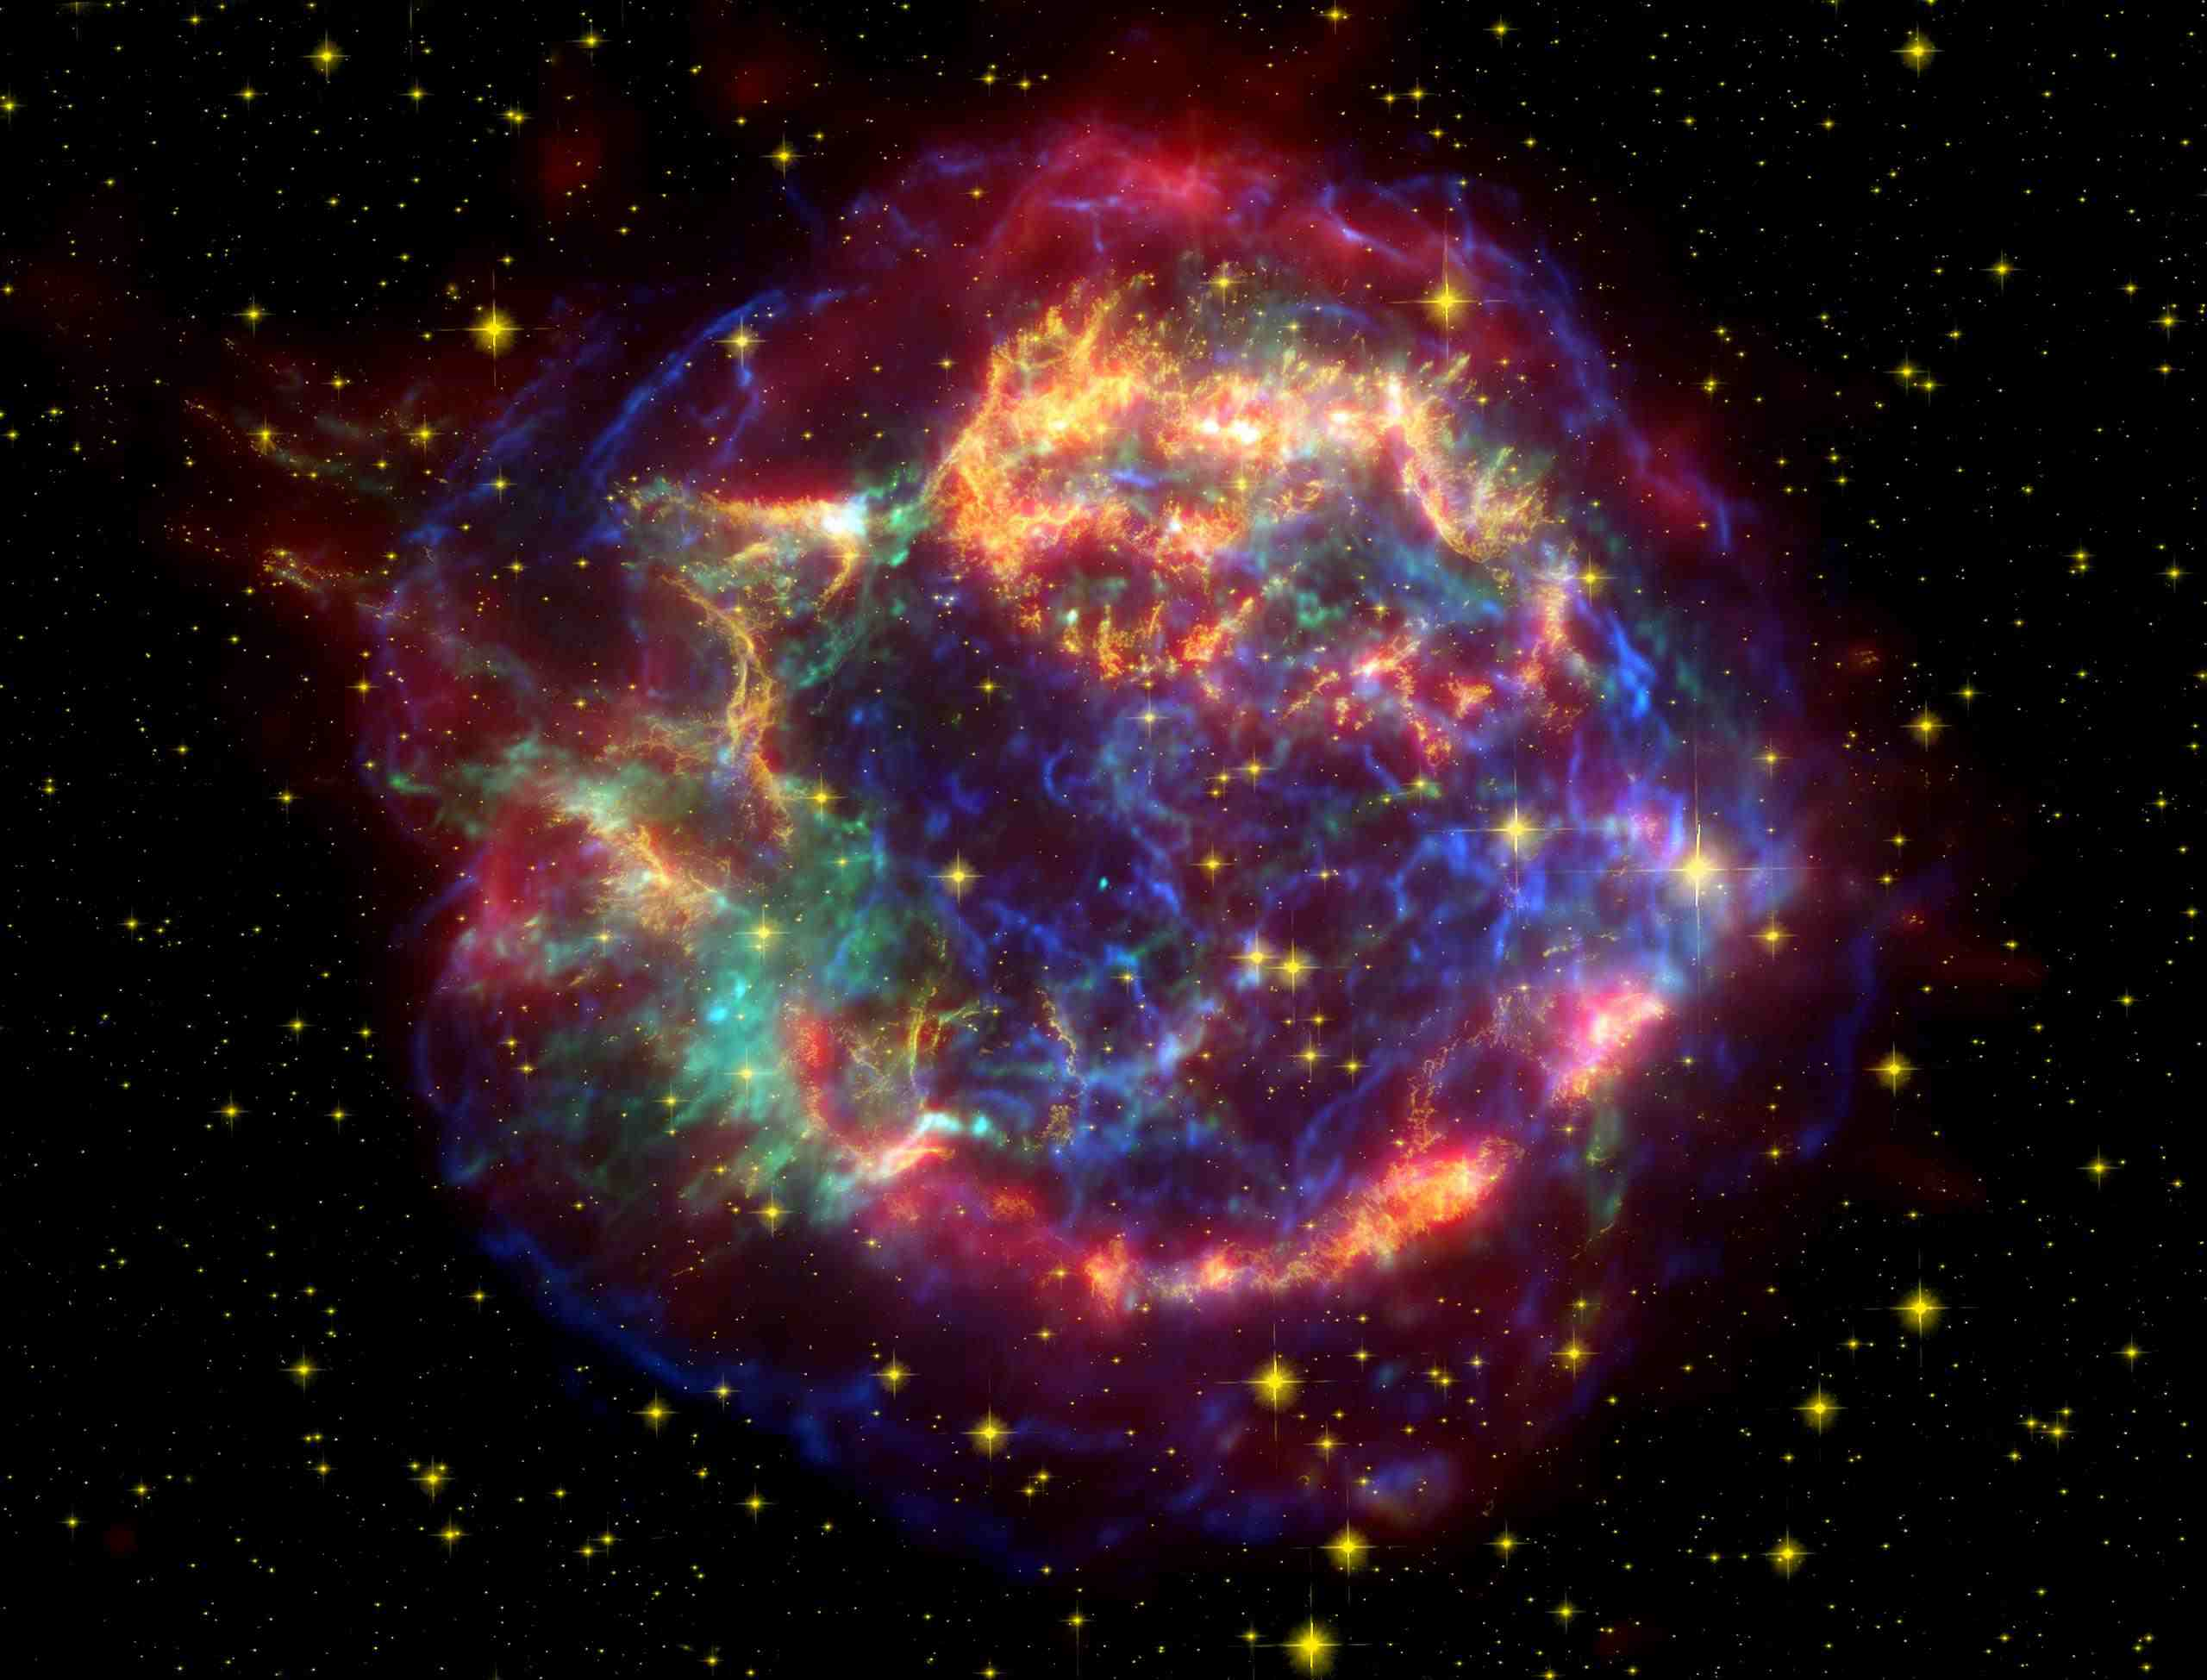 A false color image of Cassiopeia A (Cas A) using observations from both the Hubble and Spitzer telescopes as well as the Chandra X-ray Observatory.